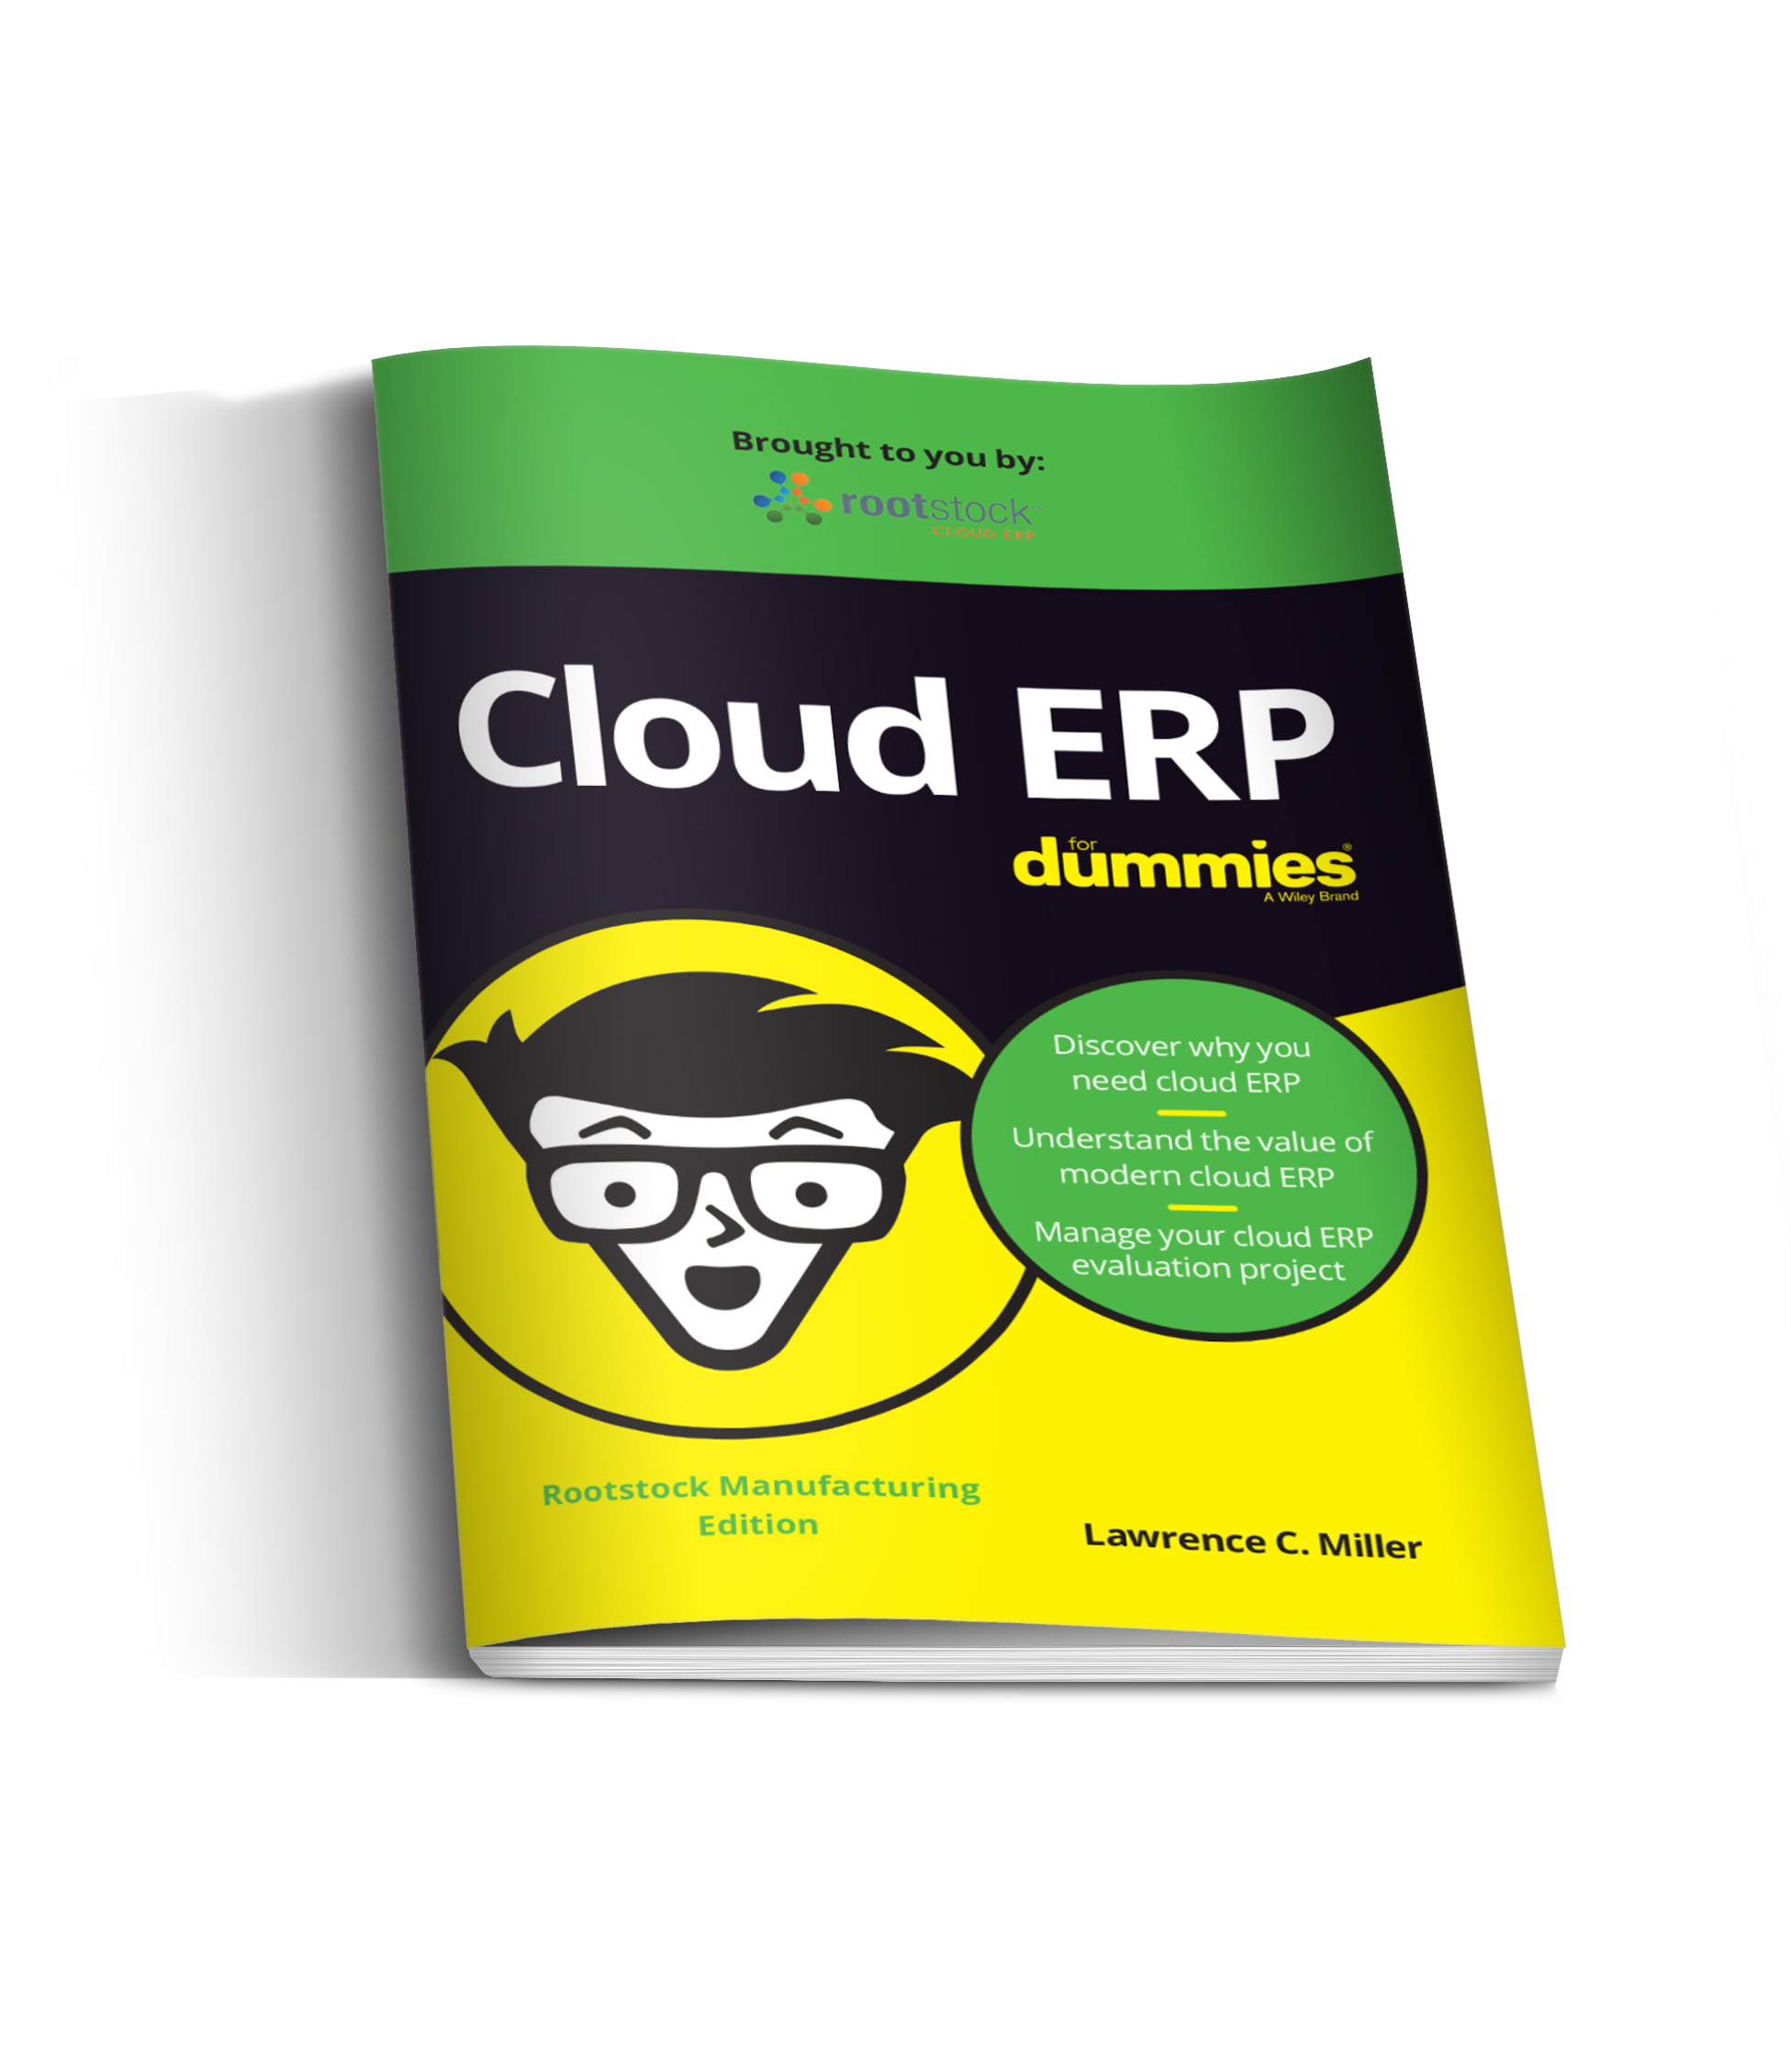 Cloud ERP for Dummies